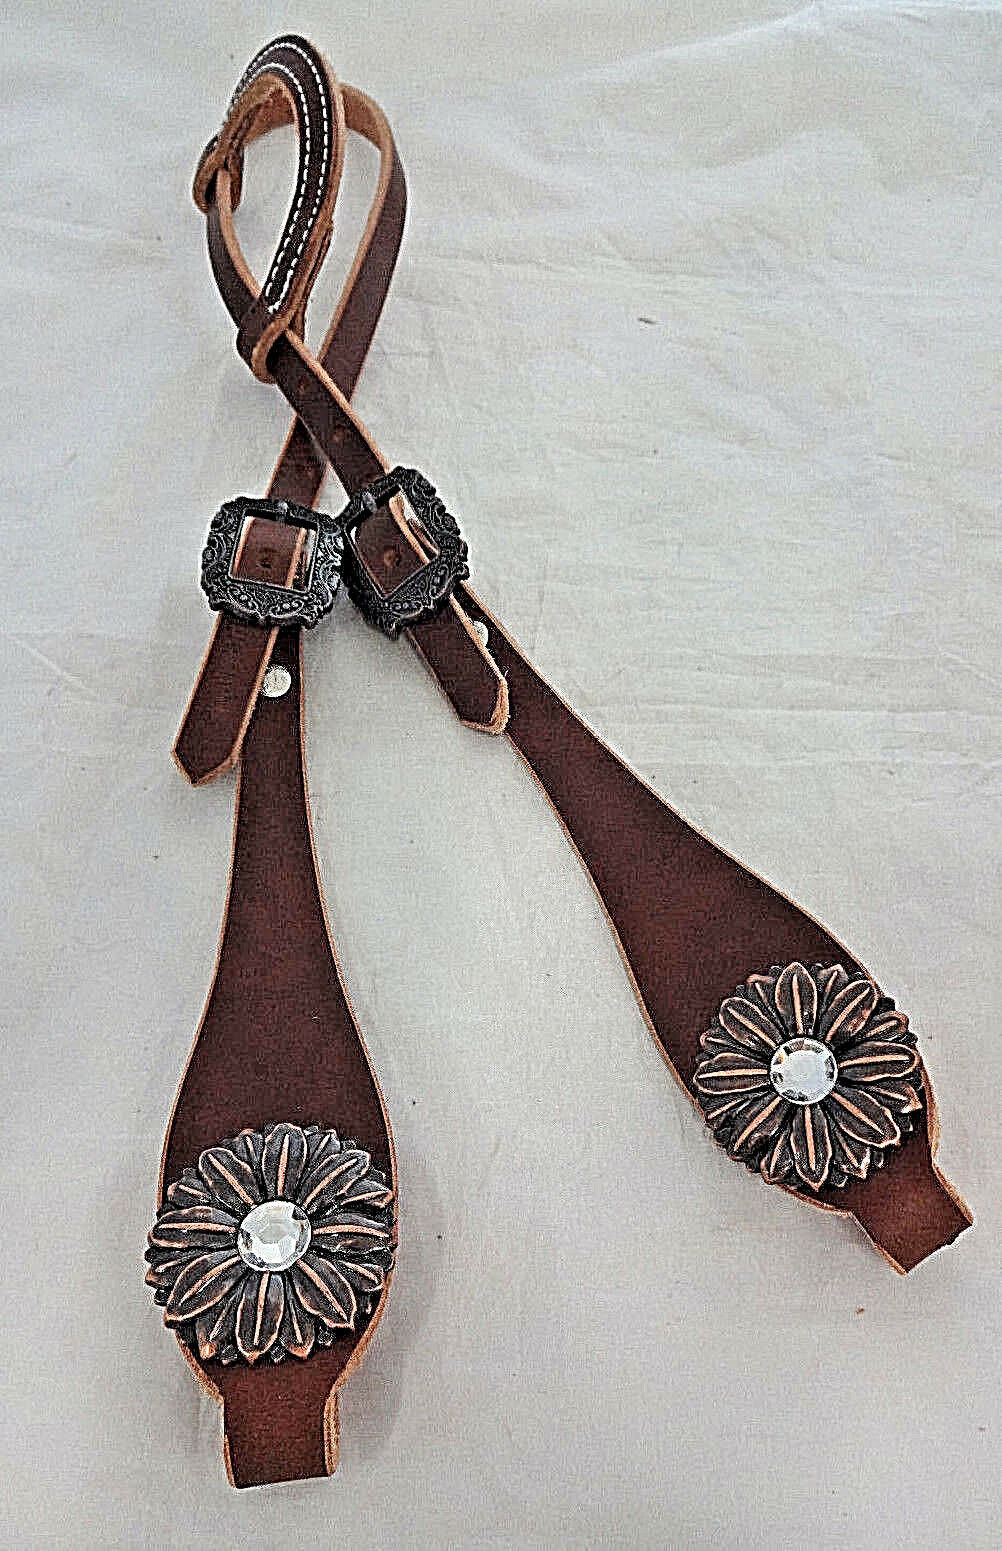 Harness Leather One Ear Headstall Horse Rich  Brown Copper Flower Crystal Conchos  sale